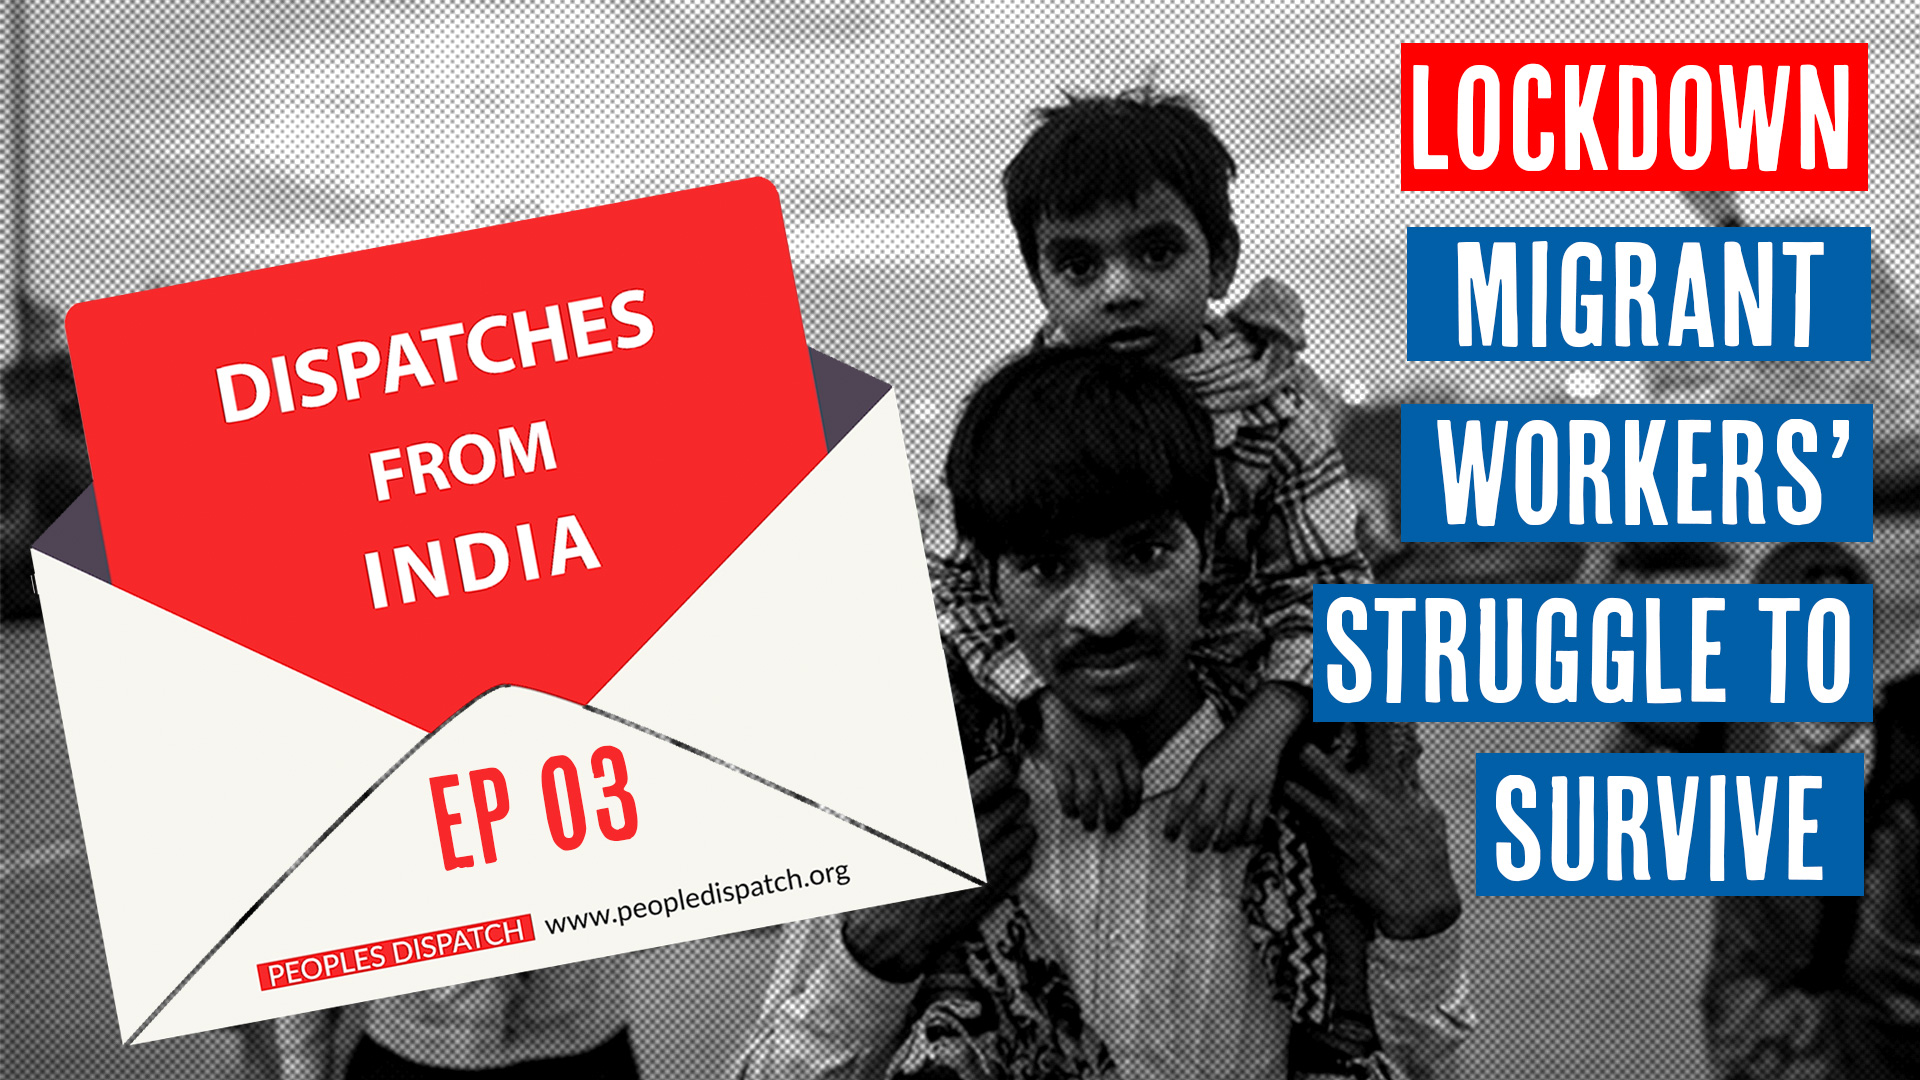 Dispatches from India Ep 3: Lockdown: Migrant workers' struggle to survive #COVID19